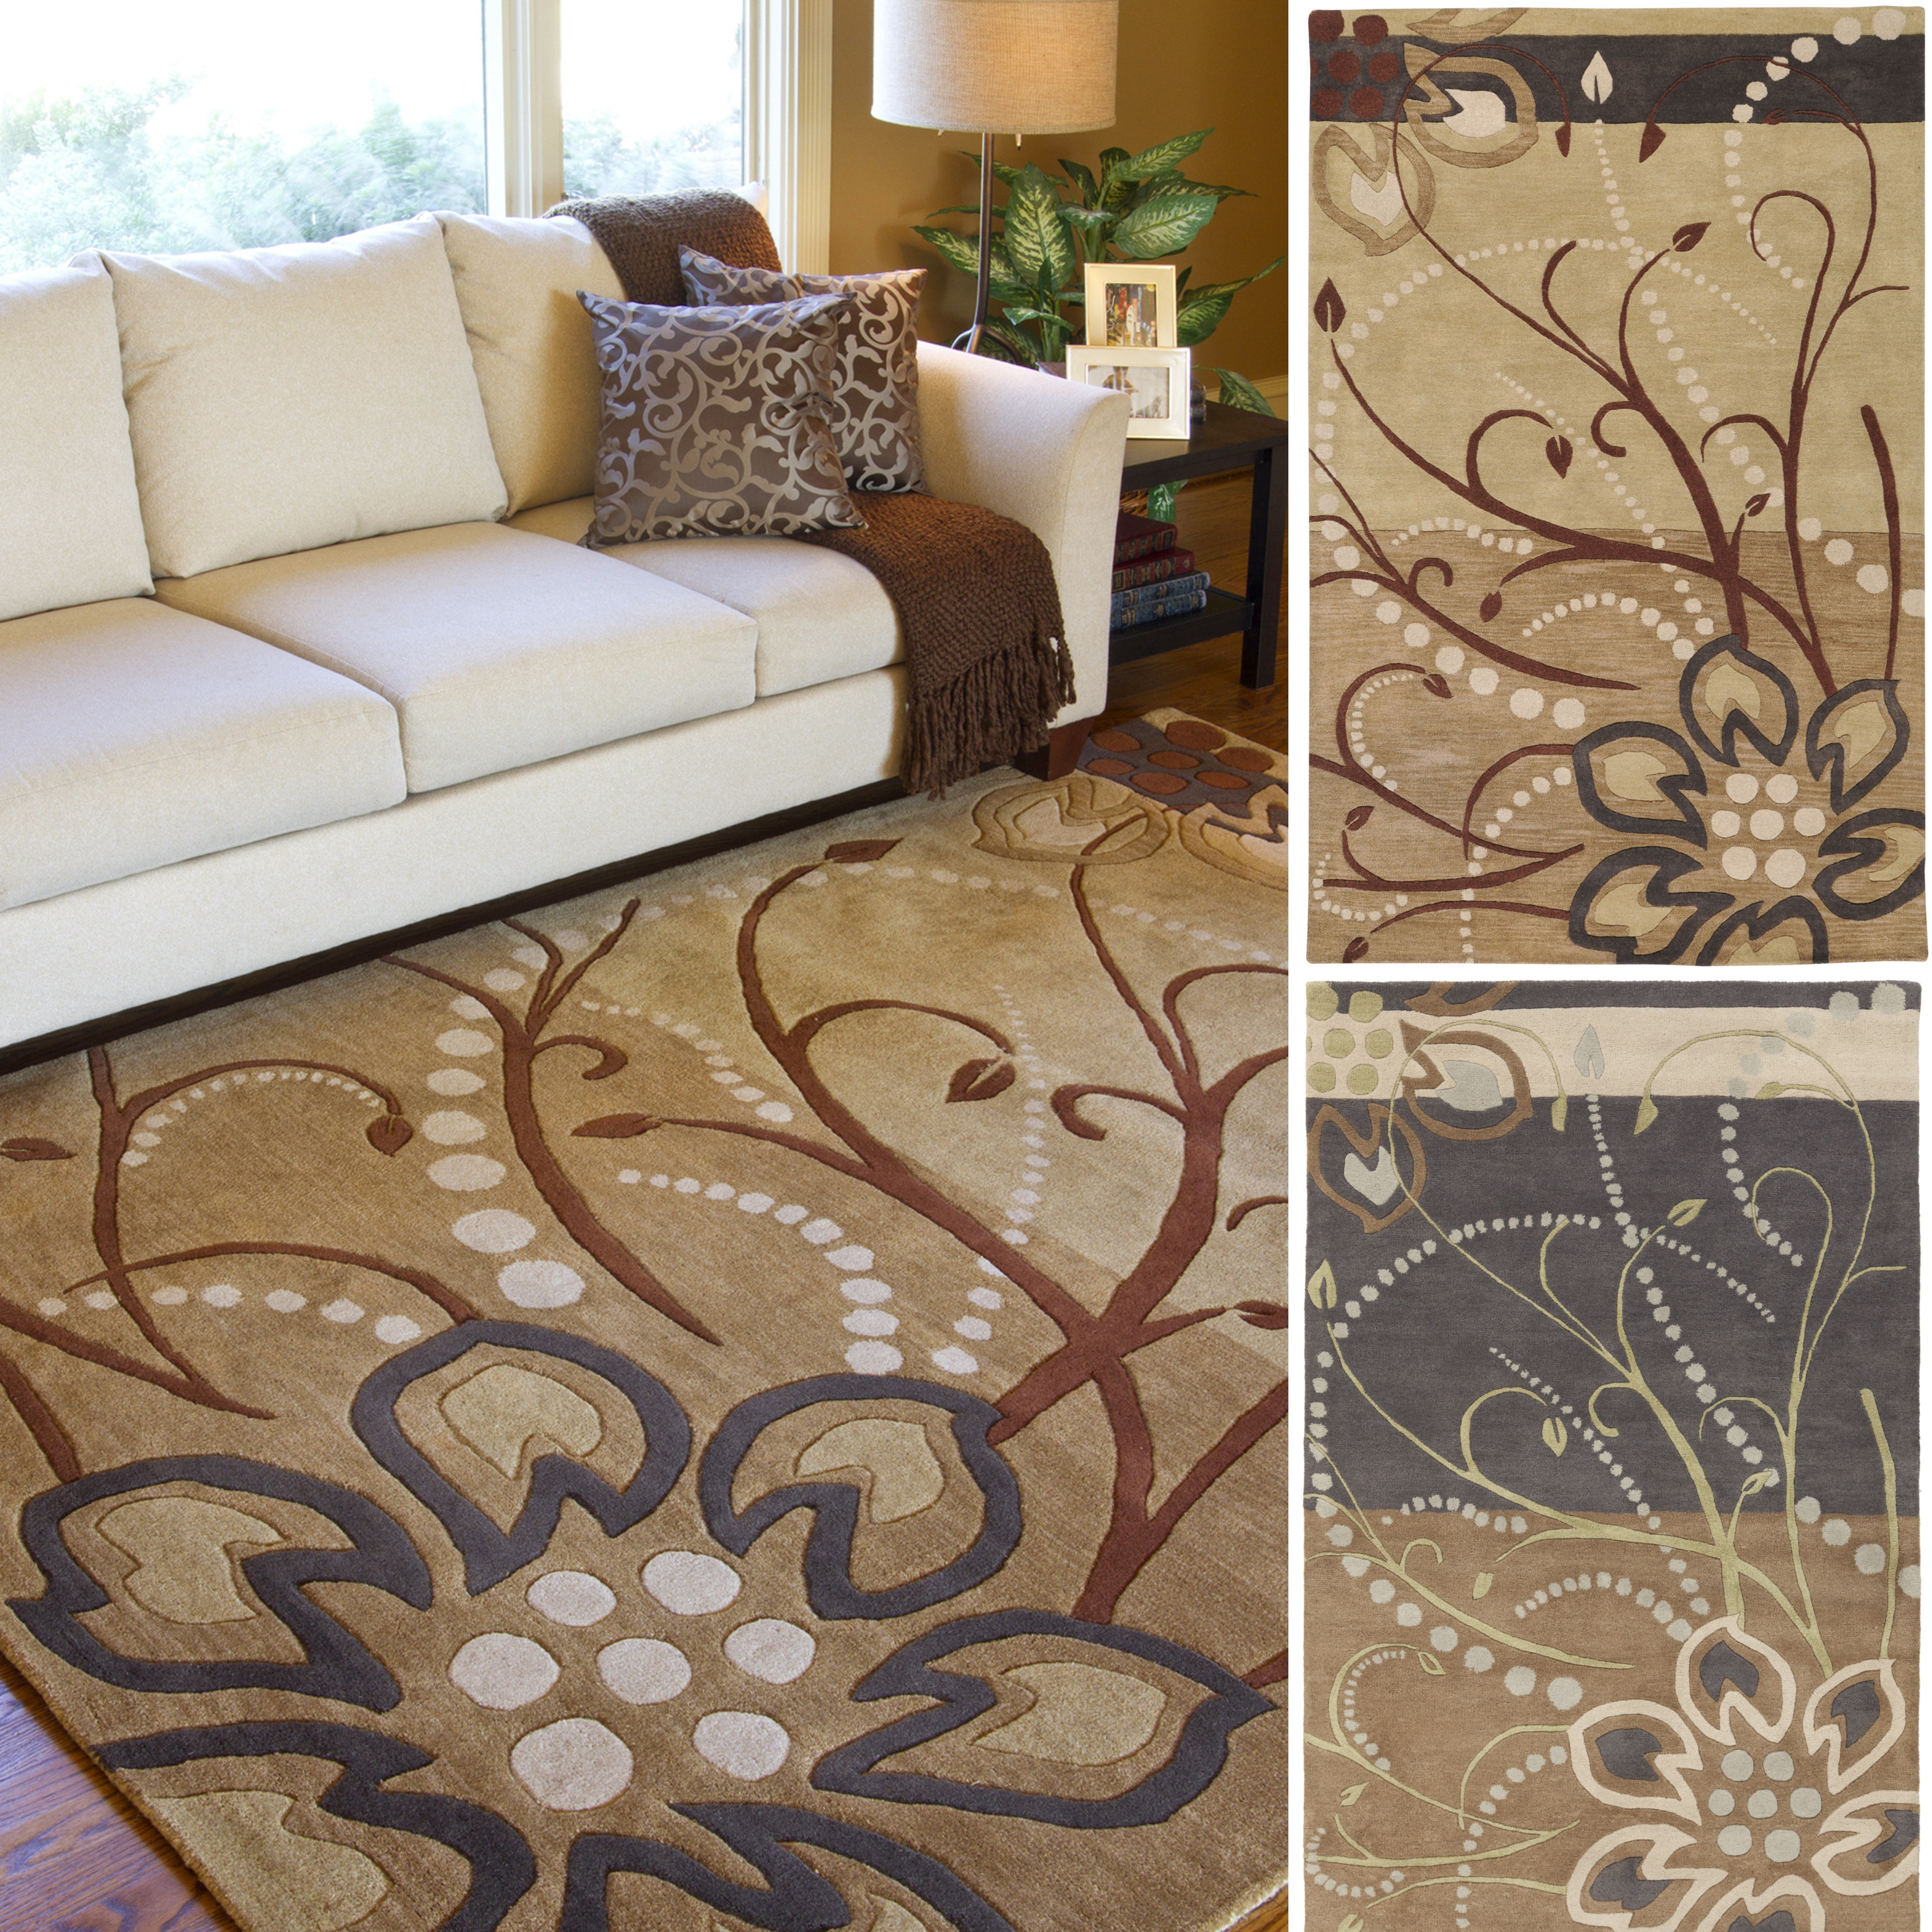 Overstock.com Hand-tufted Windy Floral Oval Wool Area Rug at Sears.com